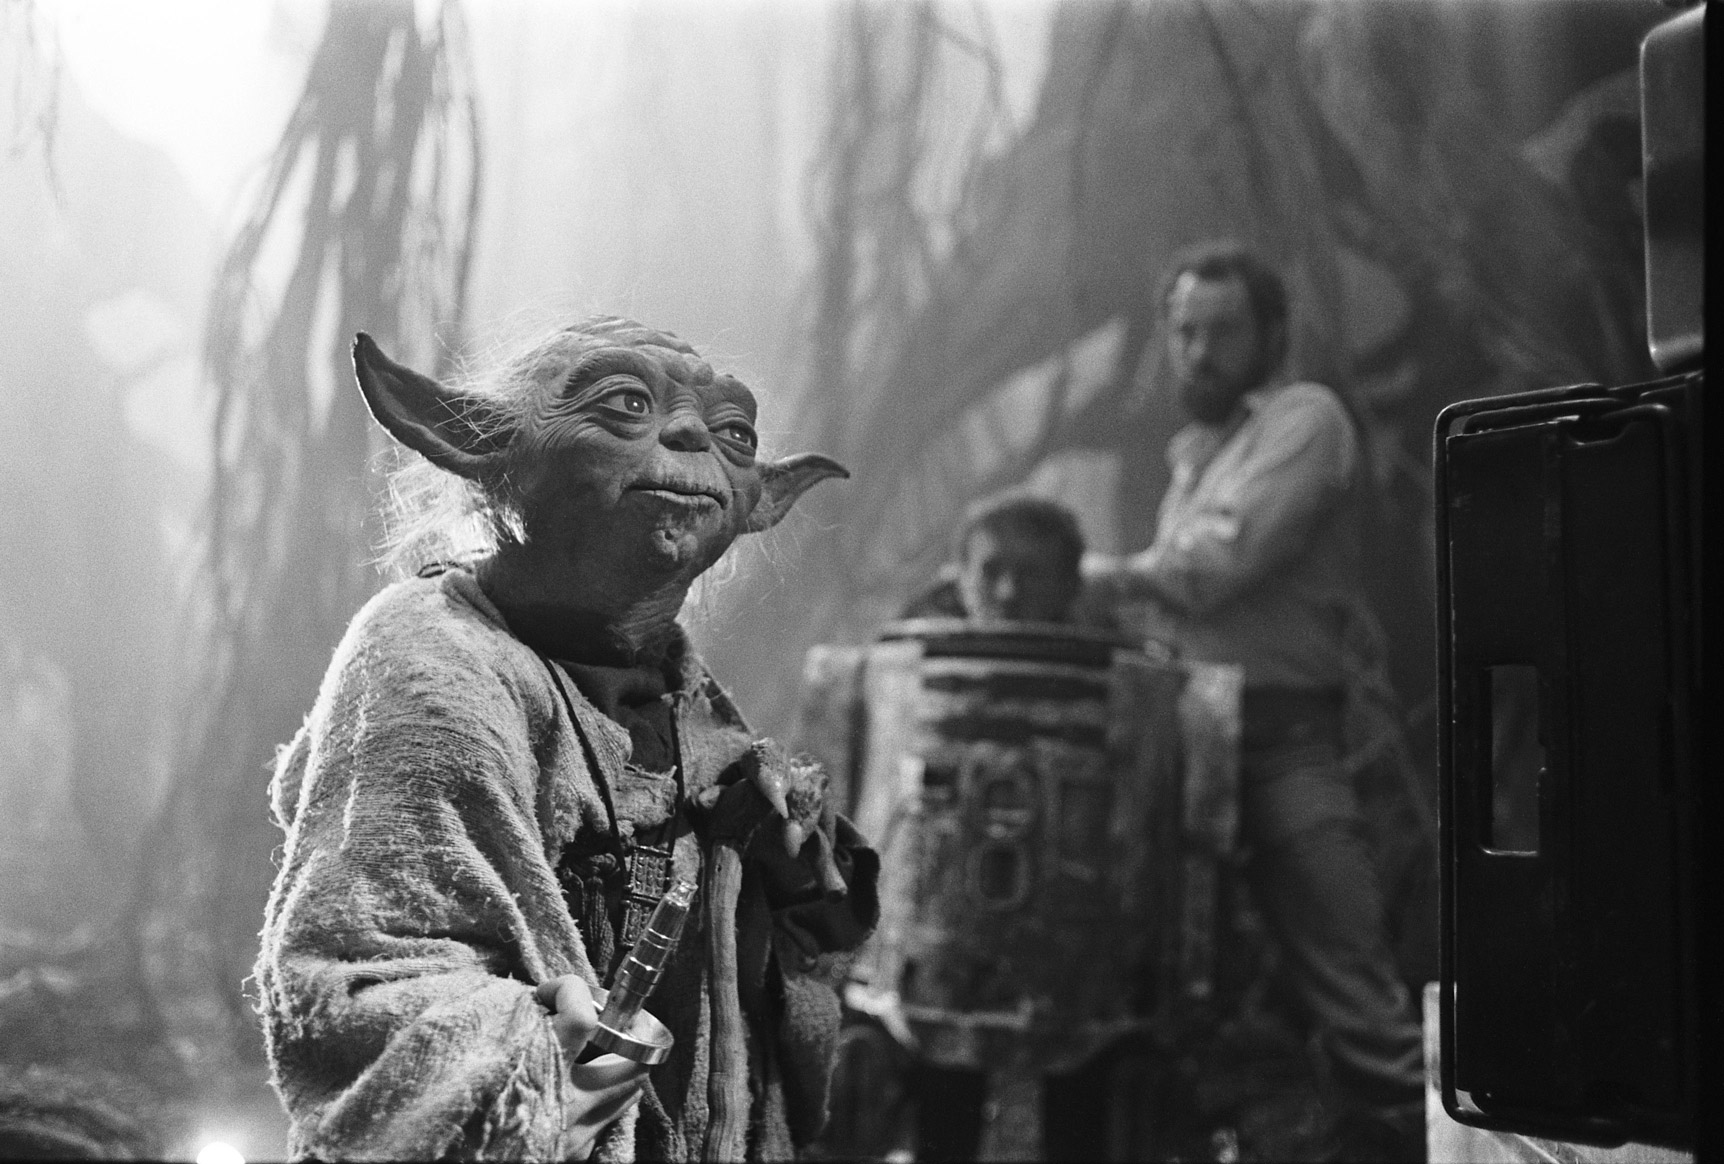 Preparing Yoda for his 'fight' scene with R2-D2 (Kenny Baker, pictured) on the set of Empire Strikes Back (image: LucasFilm).